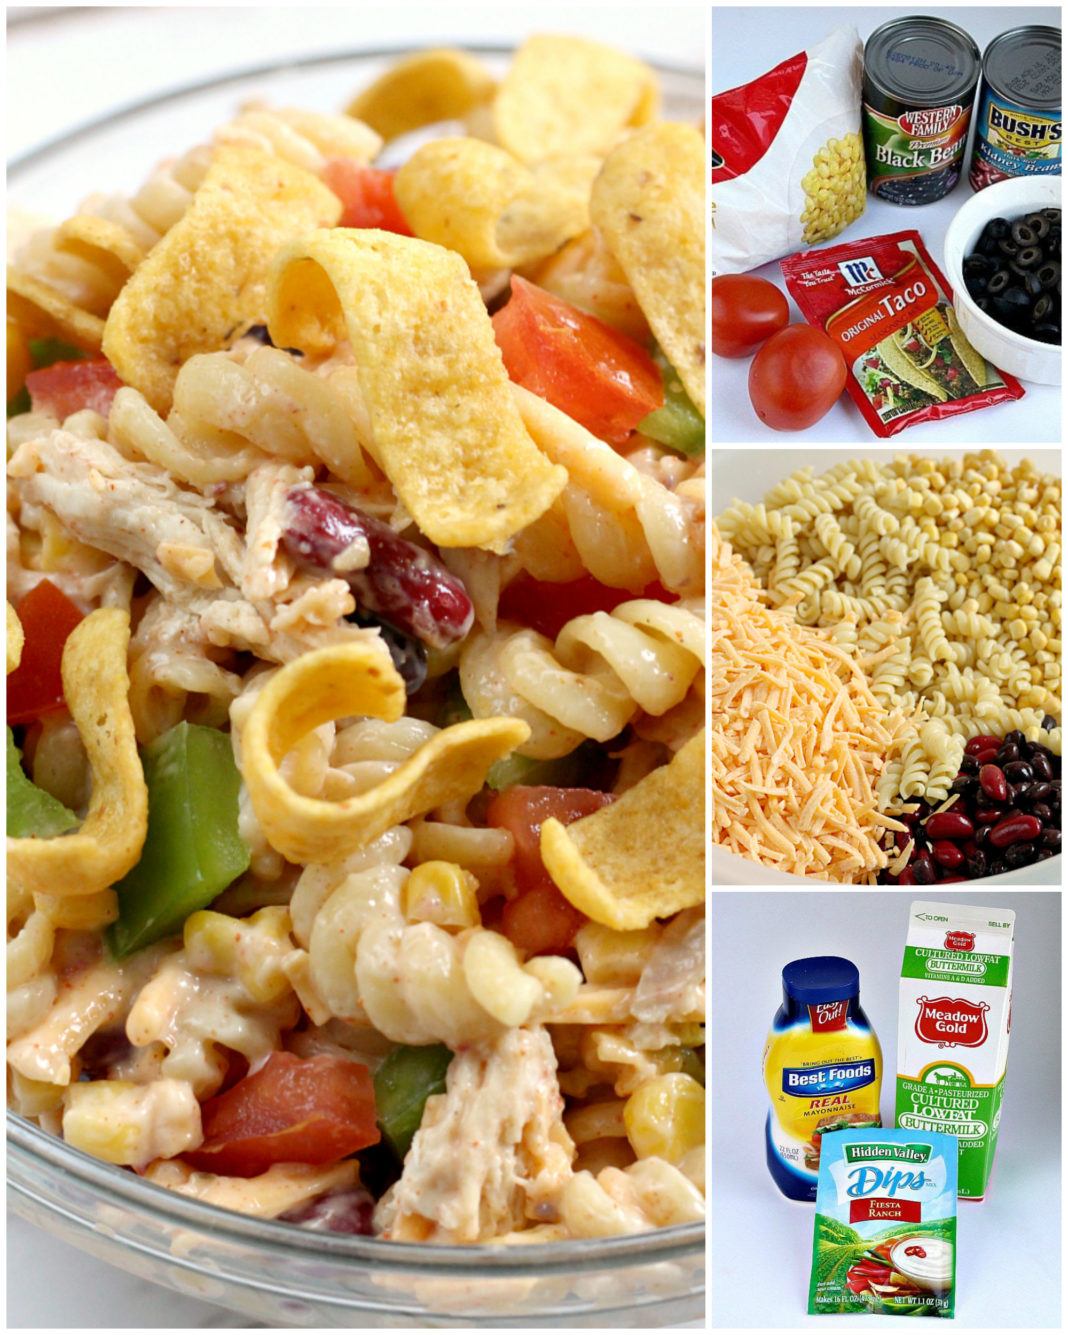 Step by step instructions on how to make Fiesta Ranch Chicken Pasta Salad